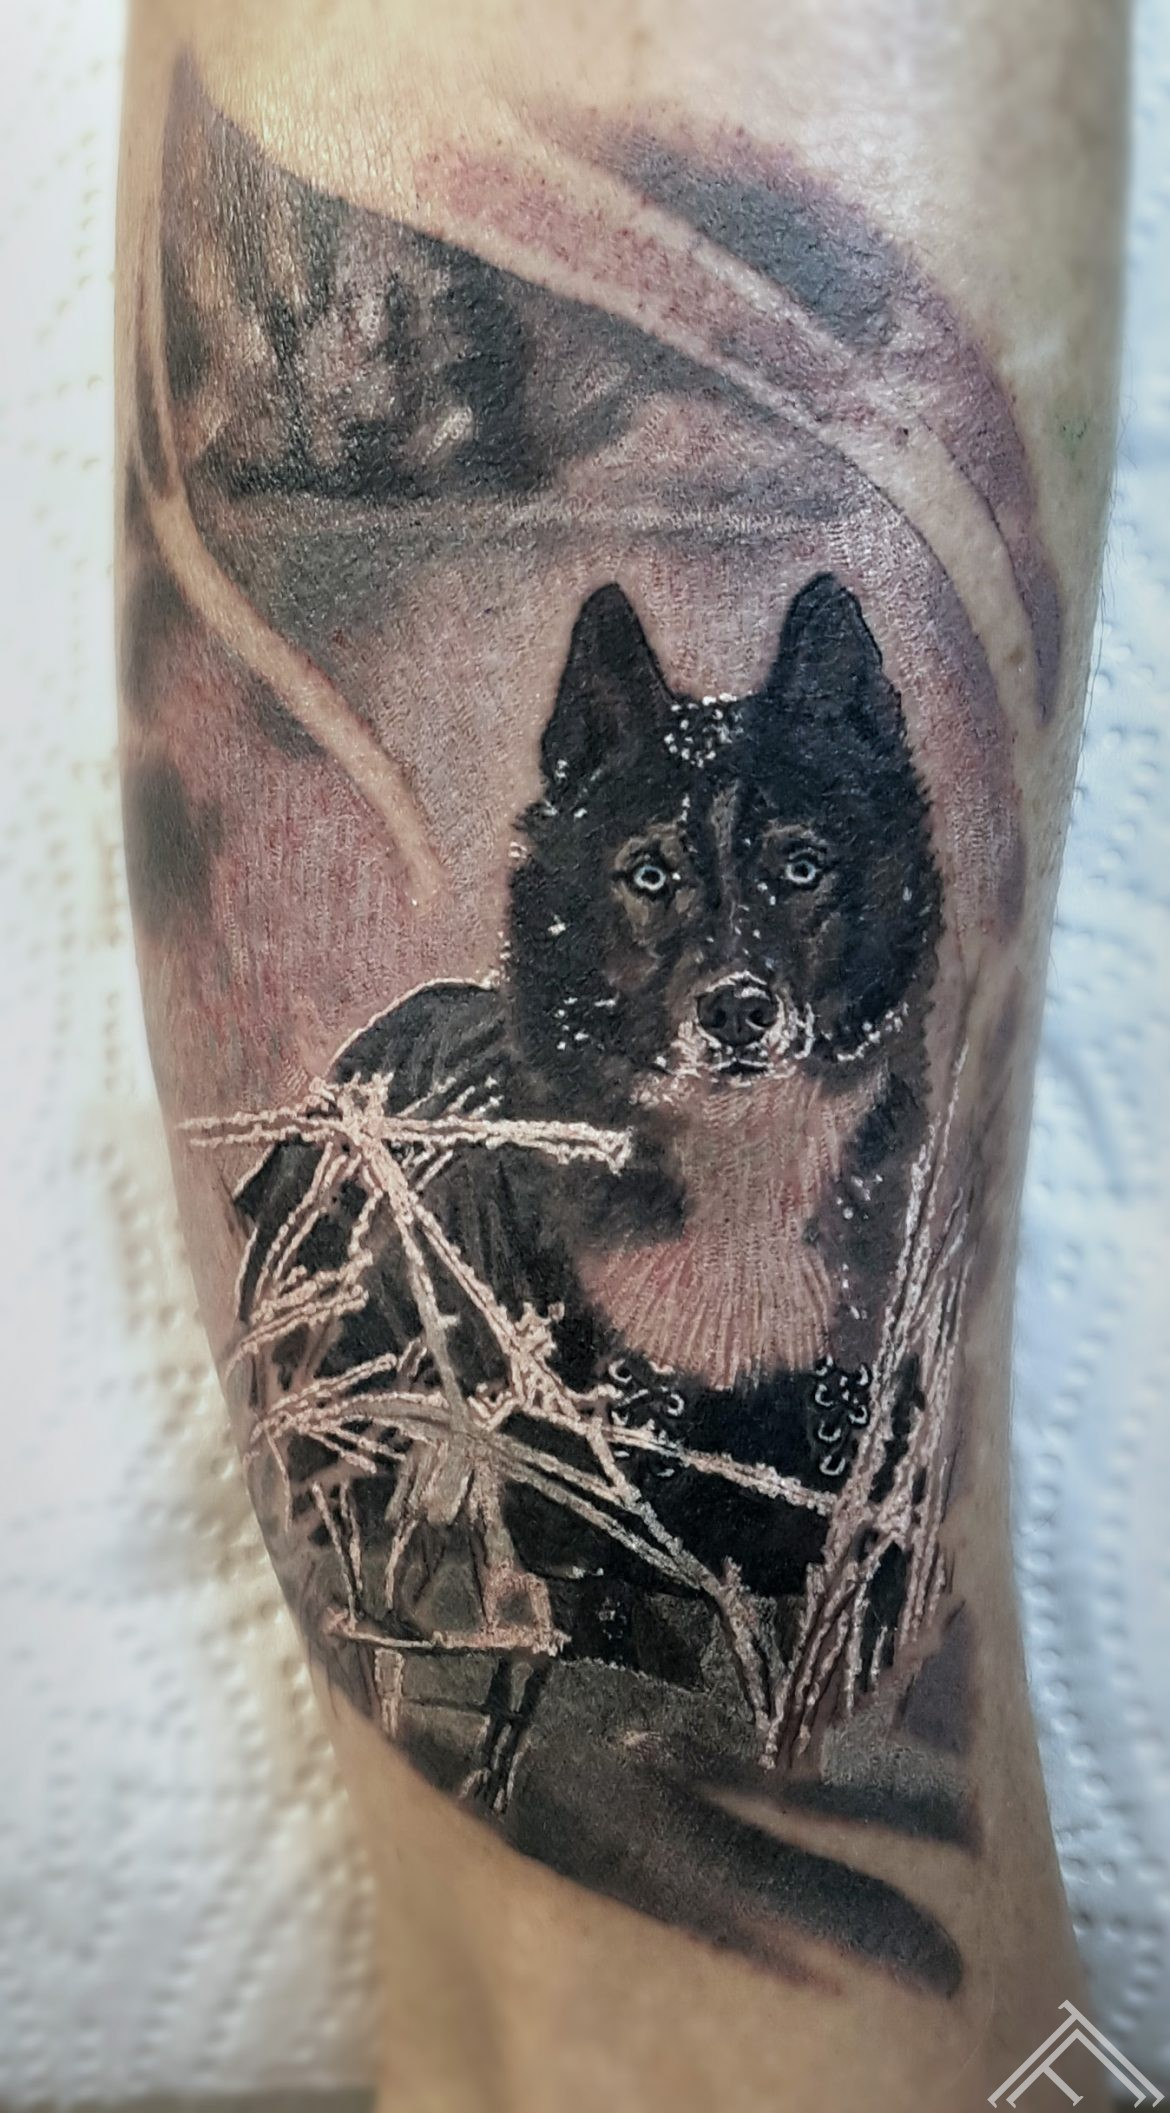 dog-suns-tetovejums-tattoo-tattoofrequency-bezudenszimes